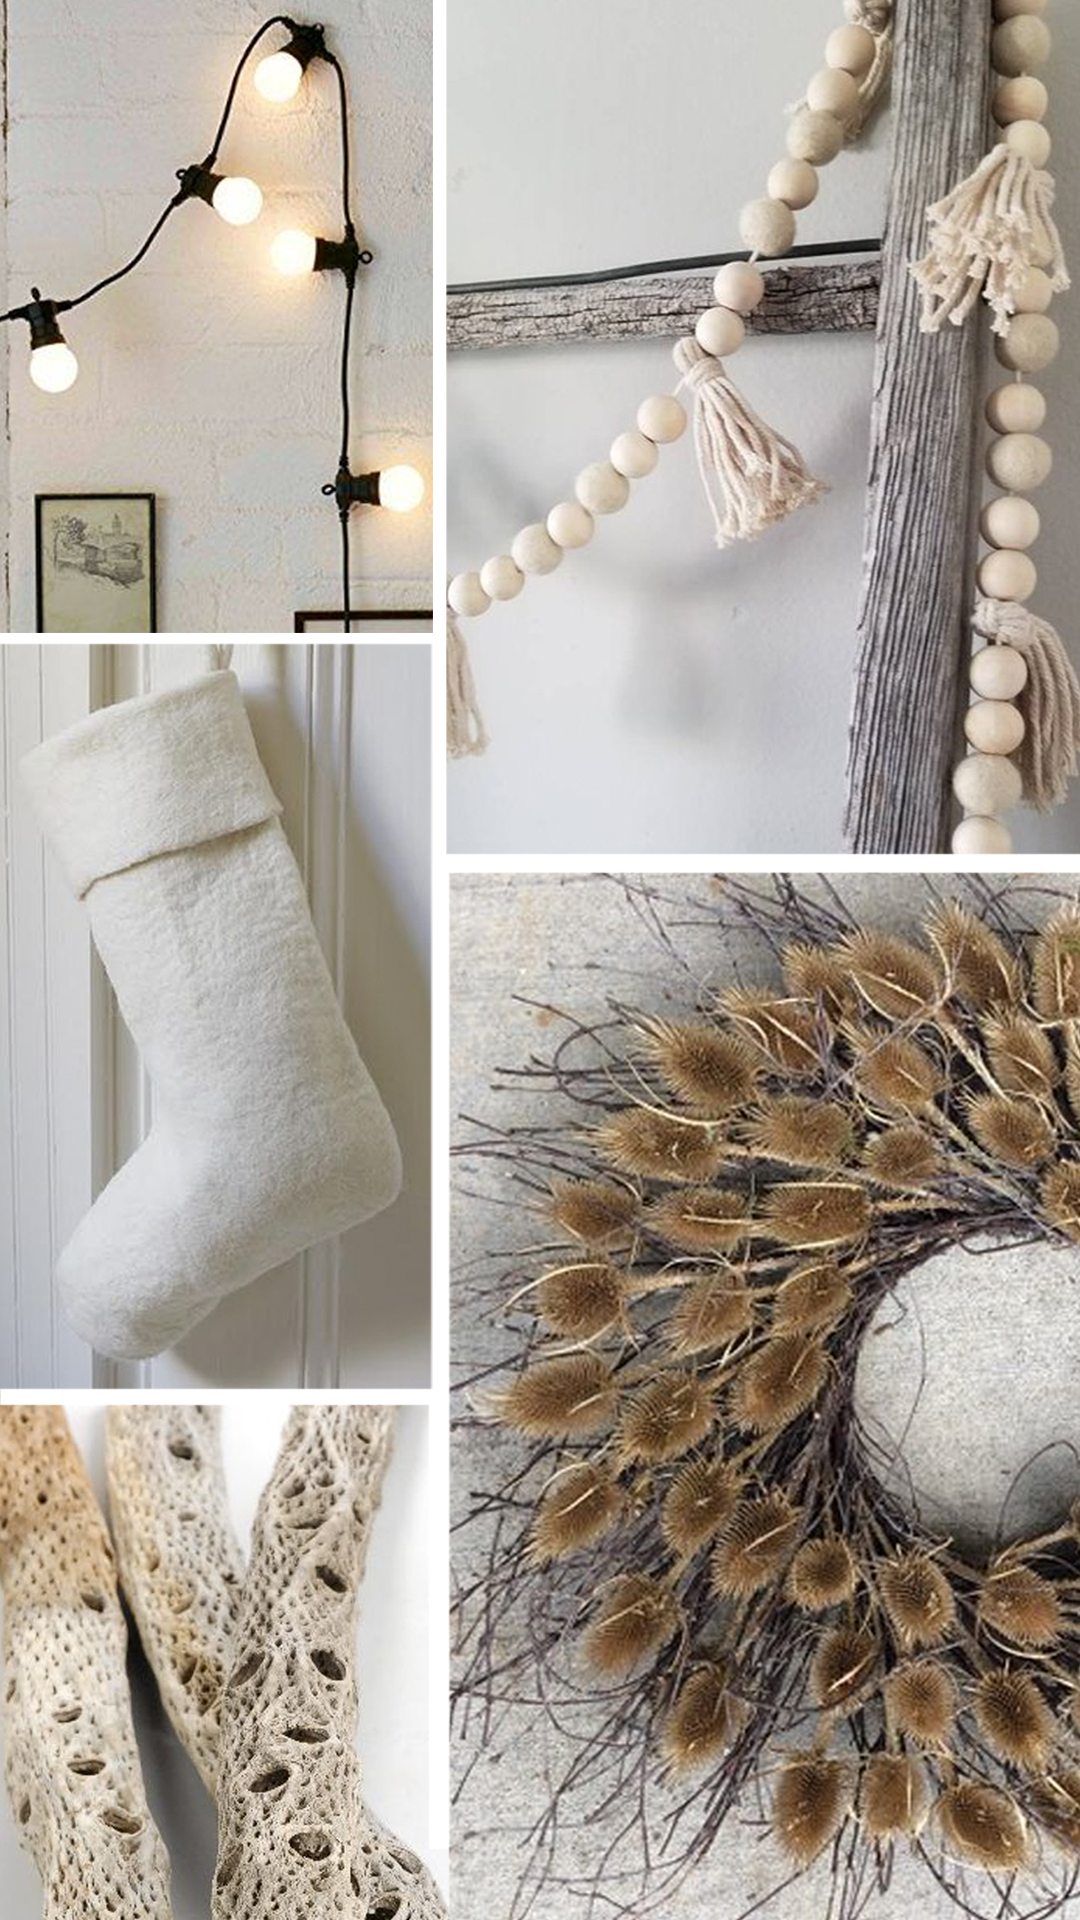 mantle - play with neutral colors, texture and light for a warm cozy feel. white felted stockings and wood and tassel garlands tie back to the table decor. drape oversized lights from the mantle - and if you don't have a functioning fireplace, put them in there over the top of dried branches. add a dried thistle or pussy willow wreath above the mantle to top it off.